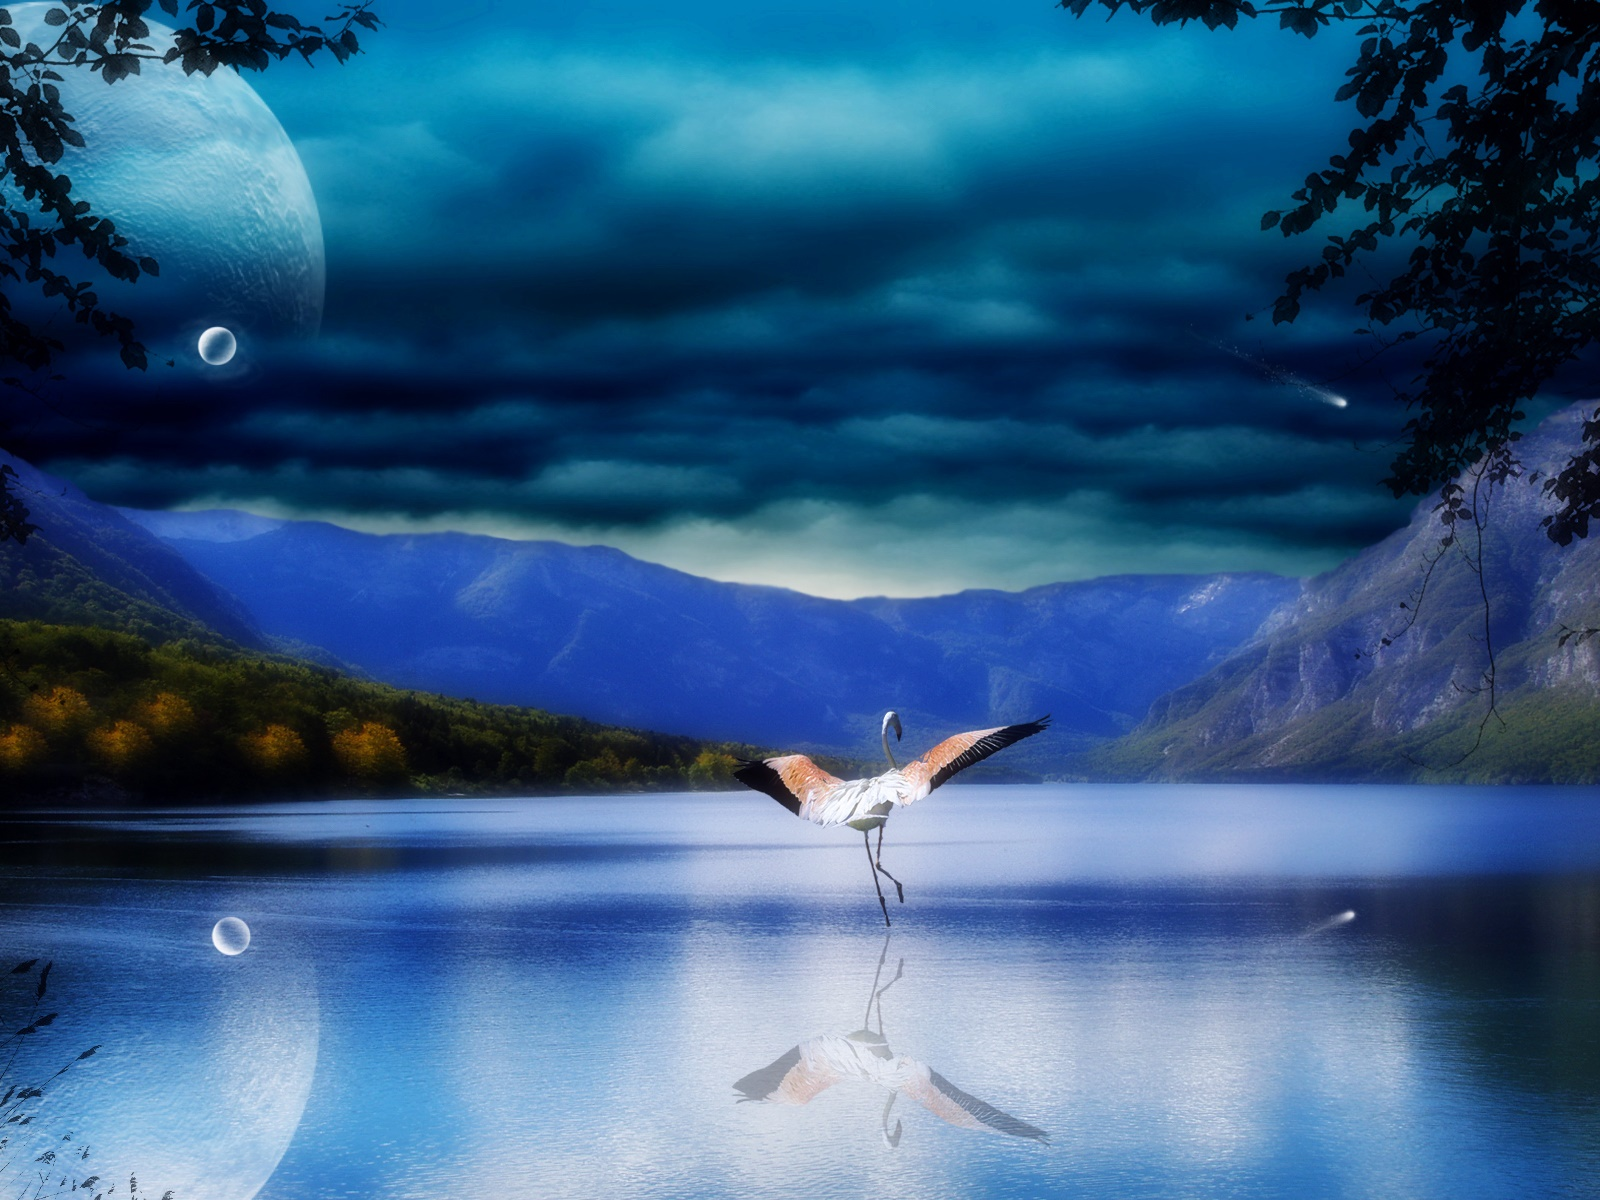 Lake, water reflection, mountains, stork, wings 1600x1200 wallpaper